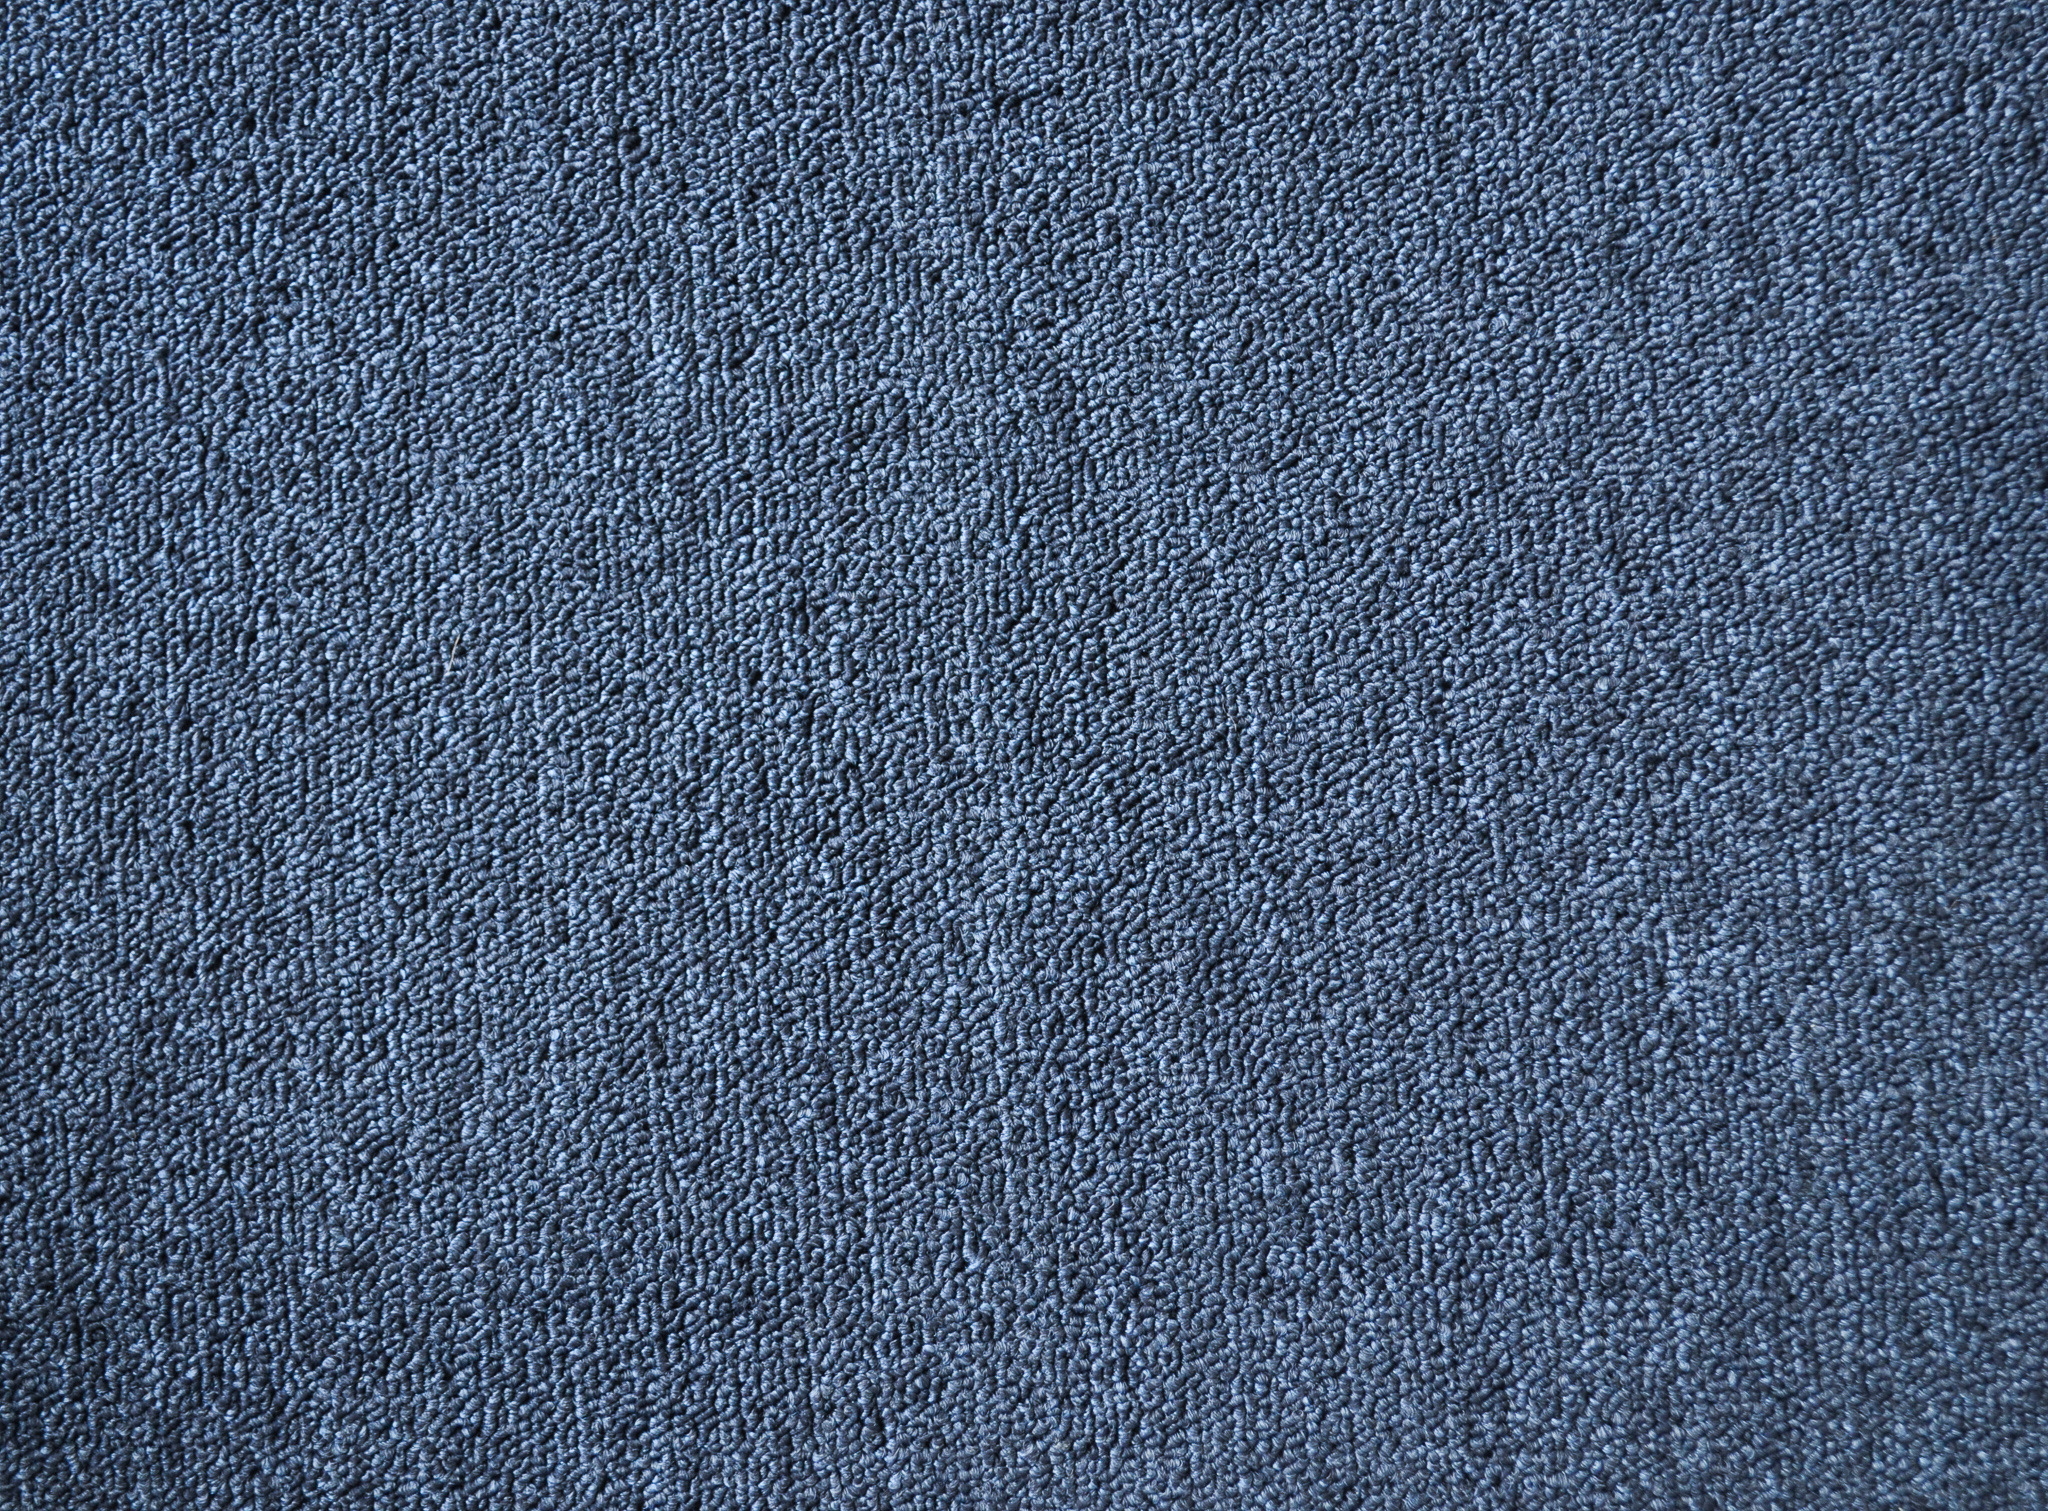 a sample of carpet of persian blue color in the carpet range useful vallet.